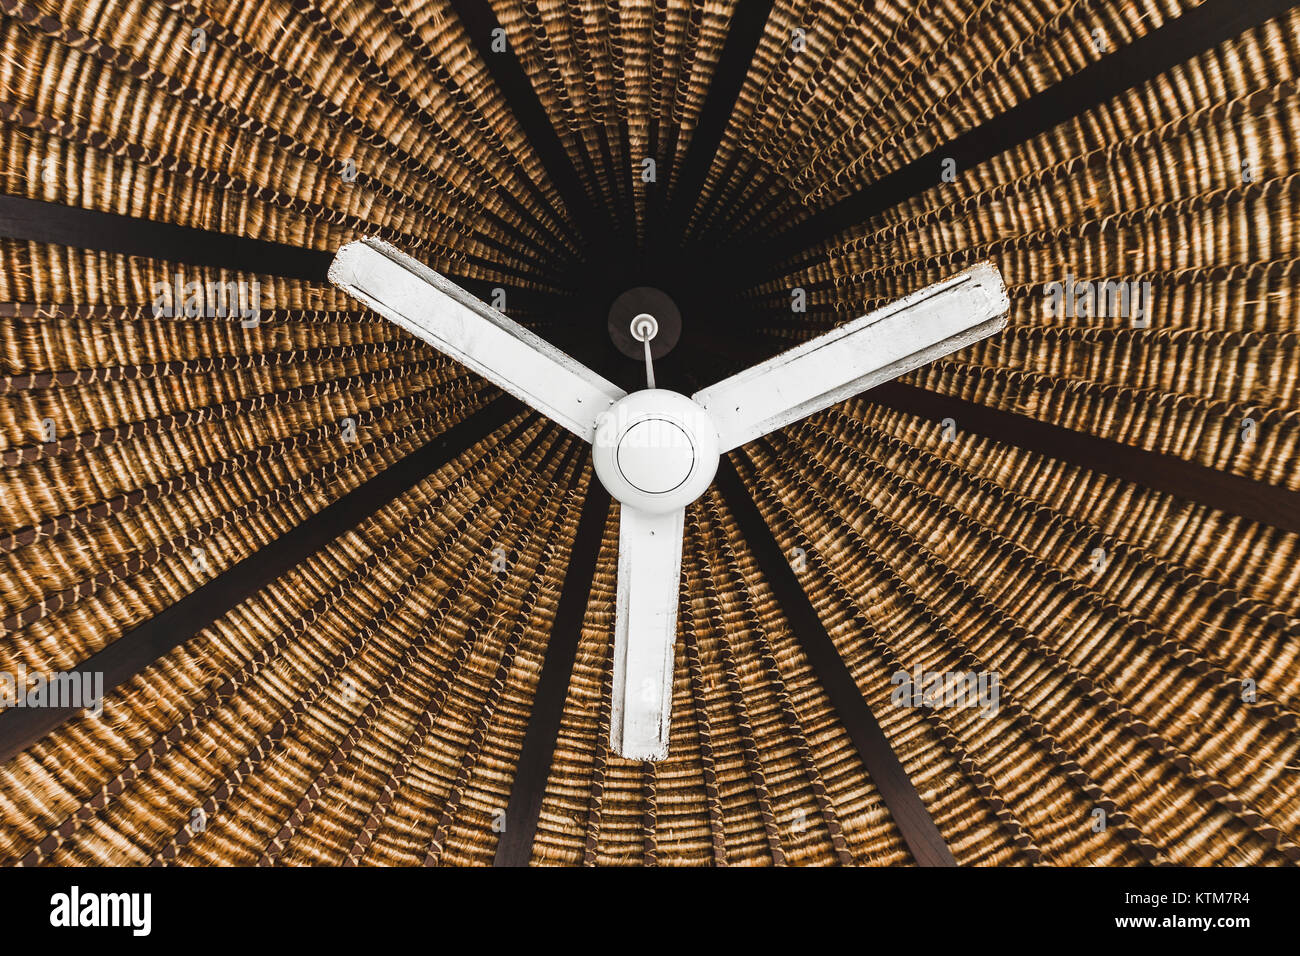 Old Ceiling Fan Stock Photos Amp Old Ceiling Fan Stock